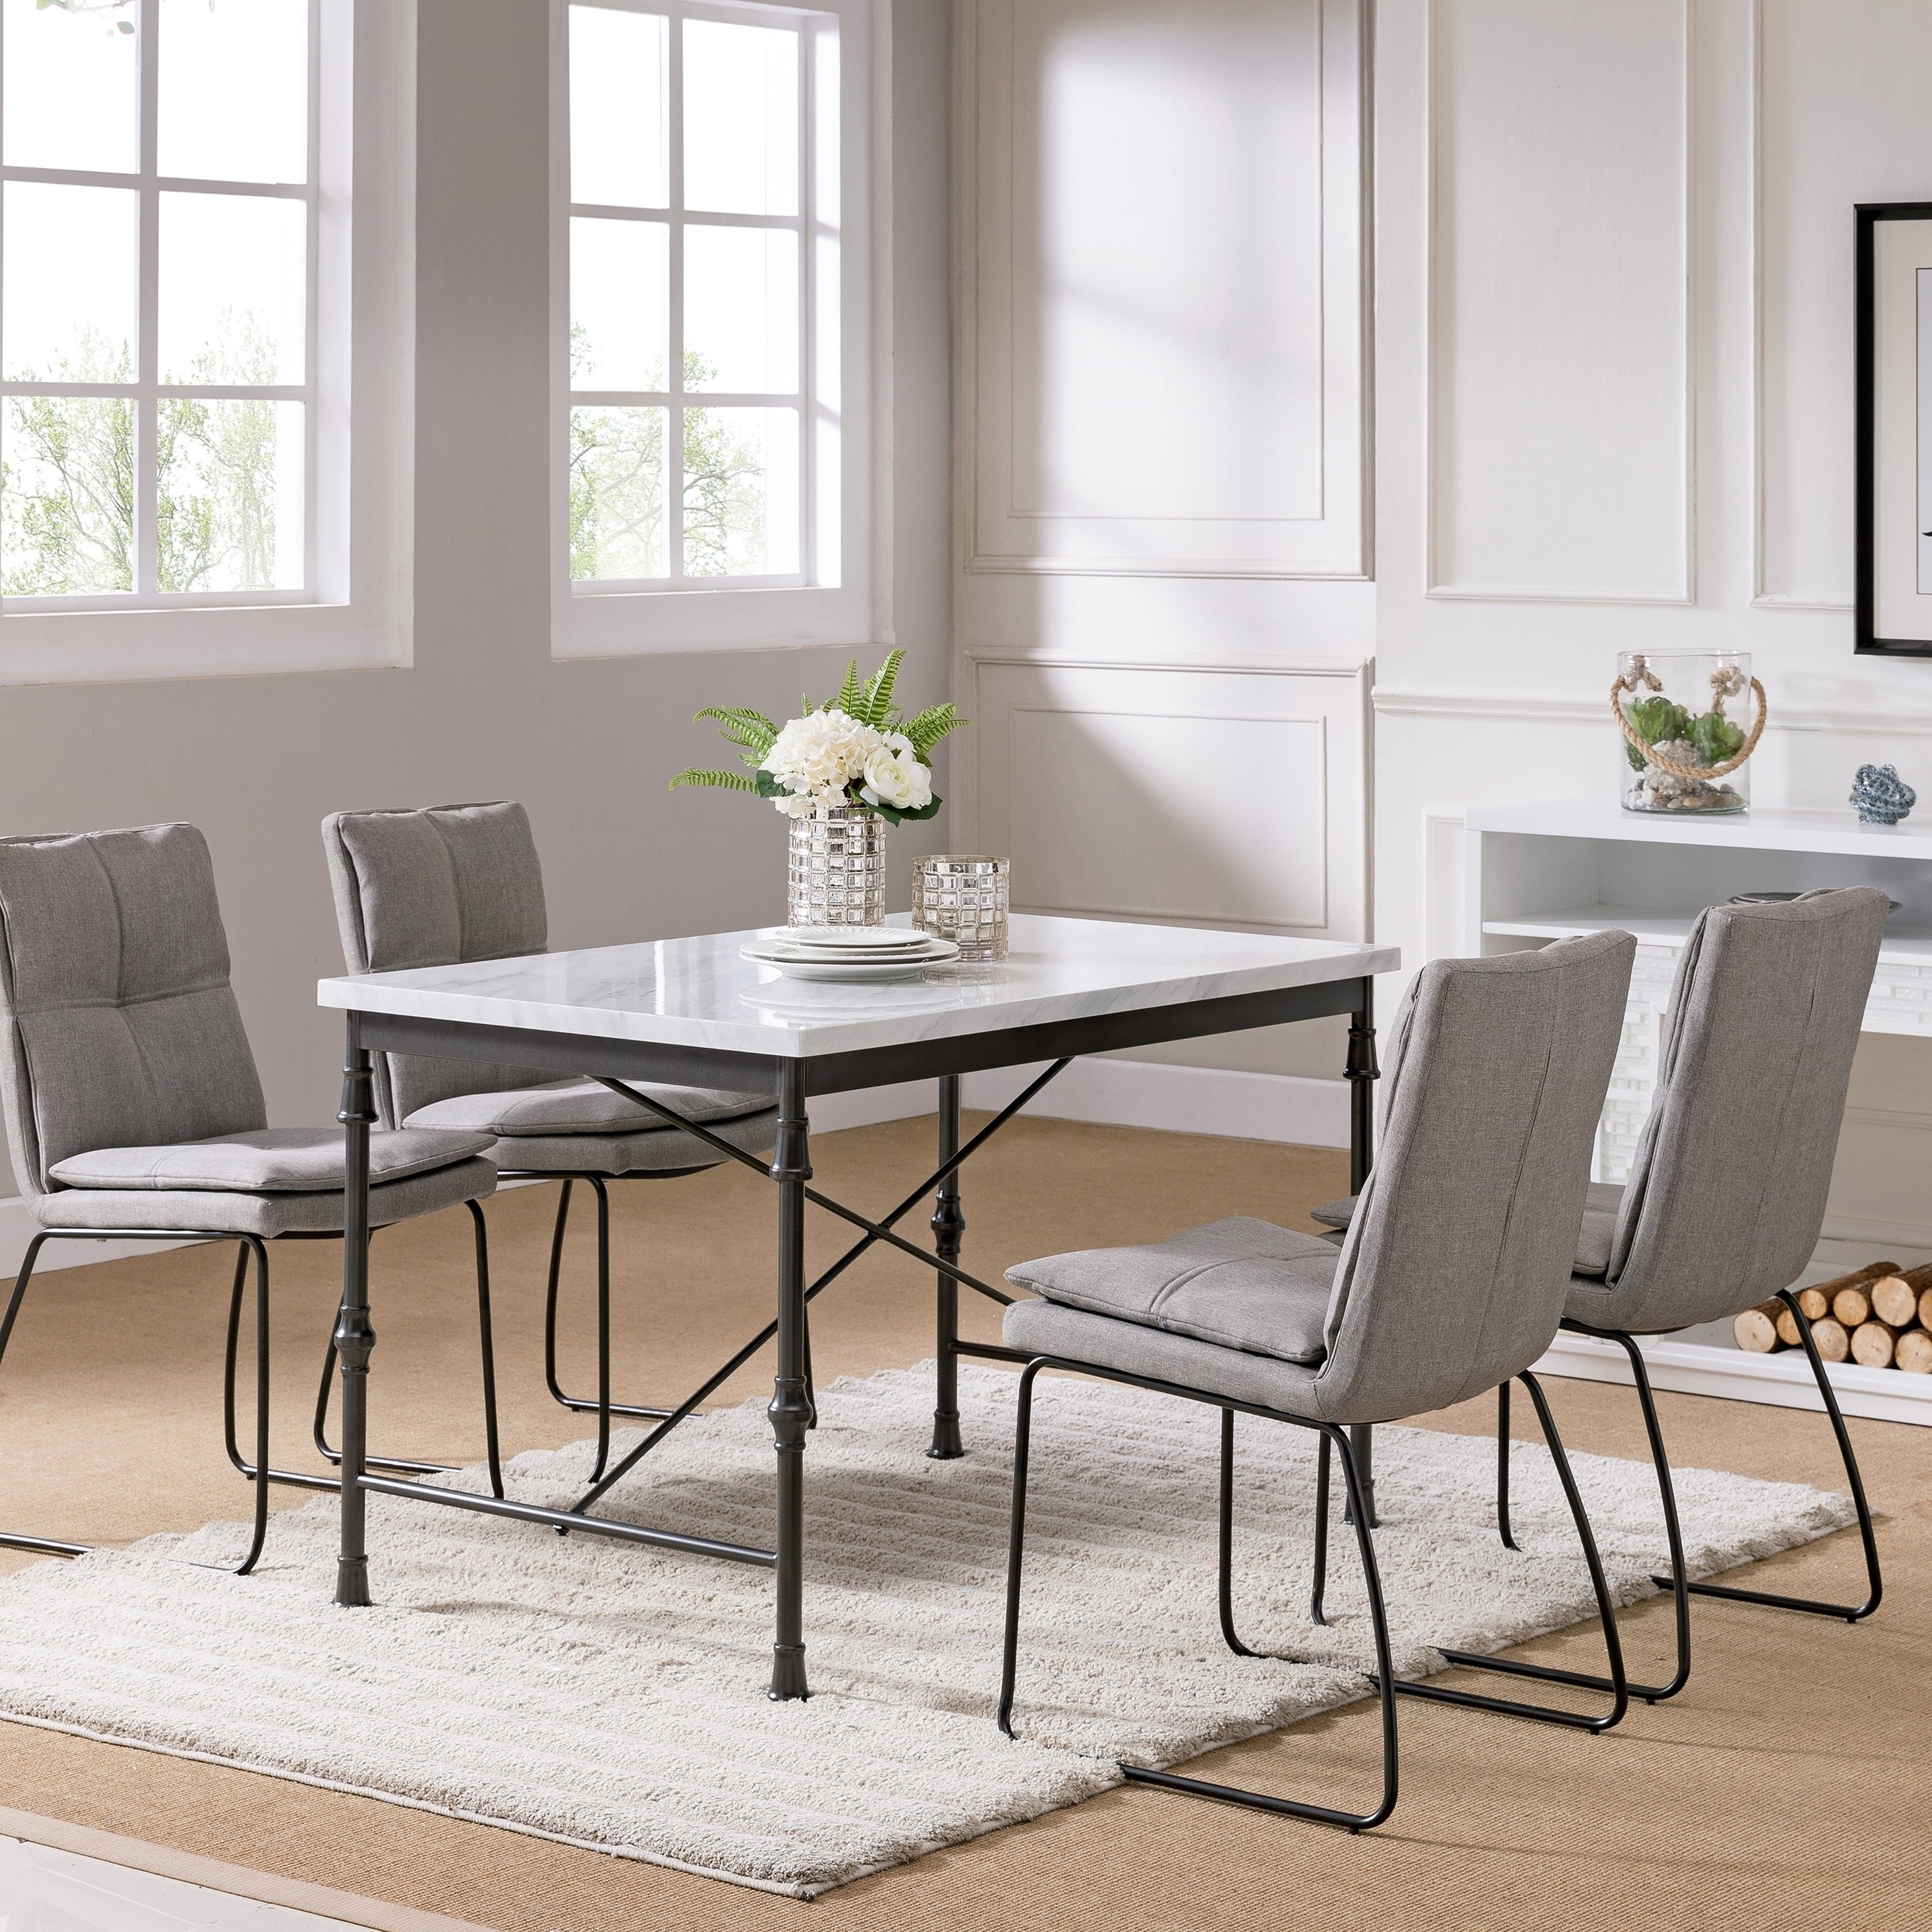 Carbon Loft Ivan Faux Marble Dining Table - white faux marble and black